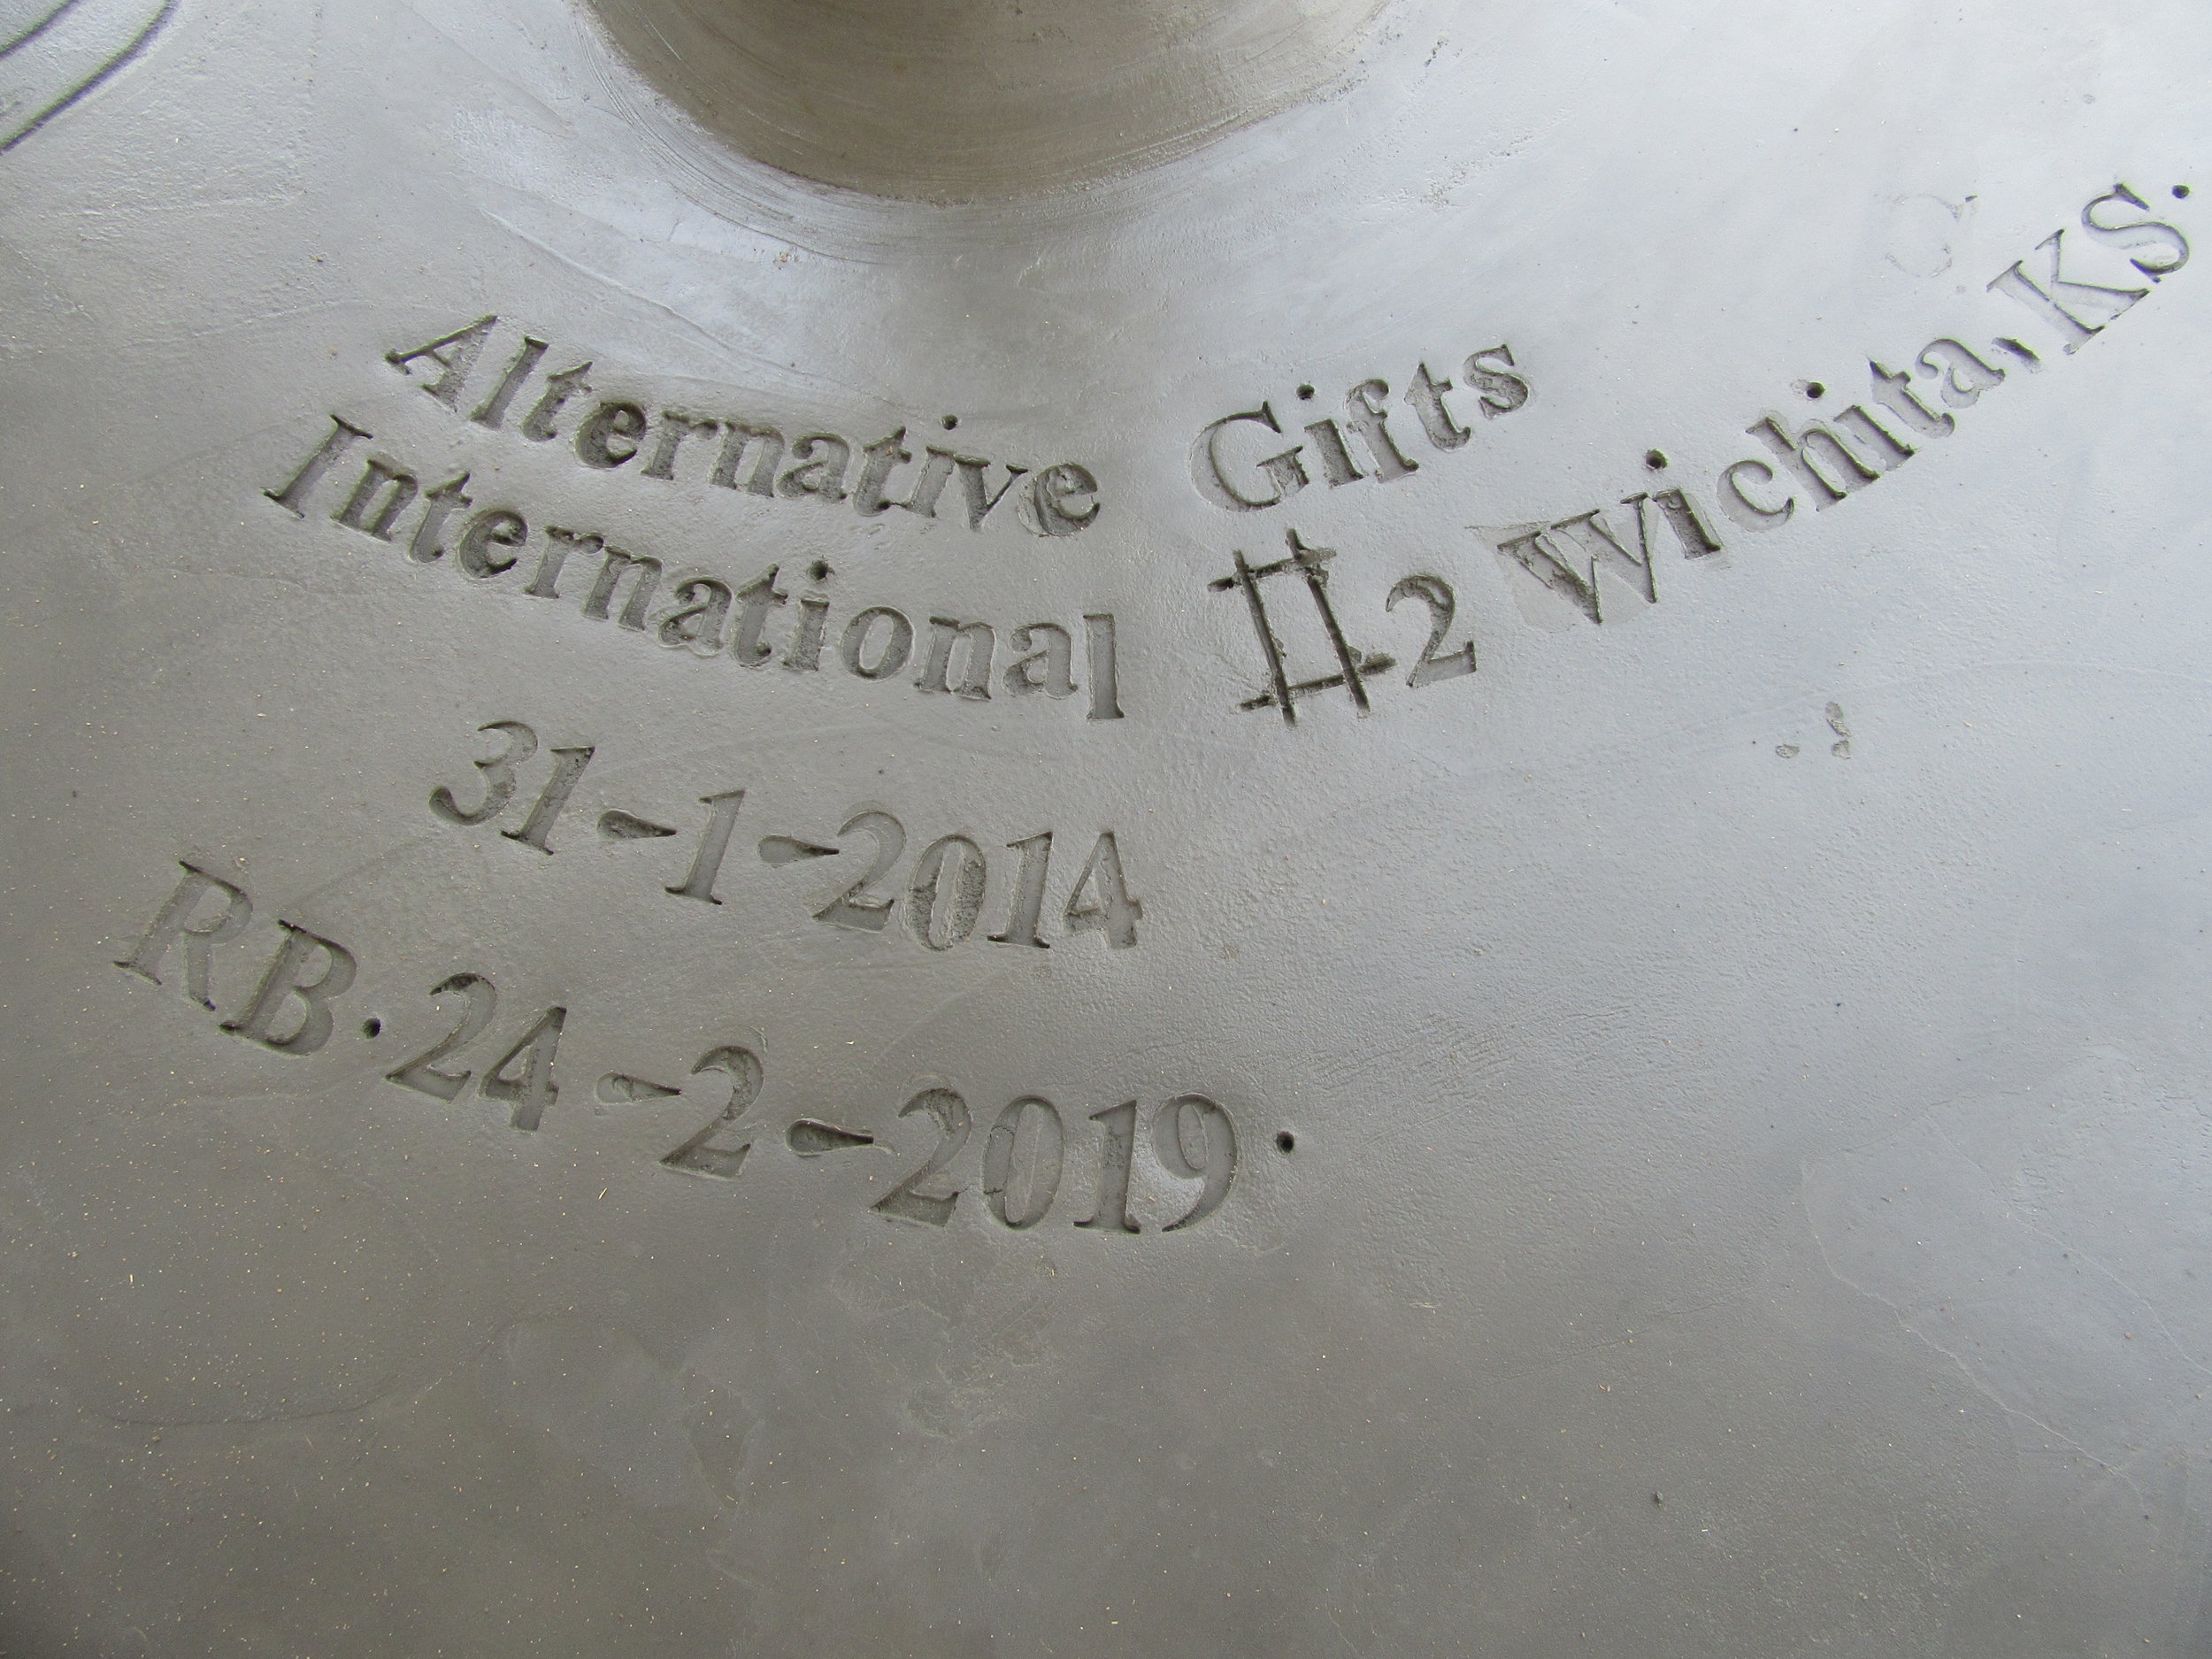 alternative gifts international #2.JPG